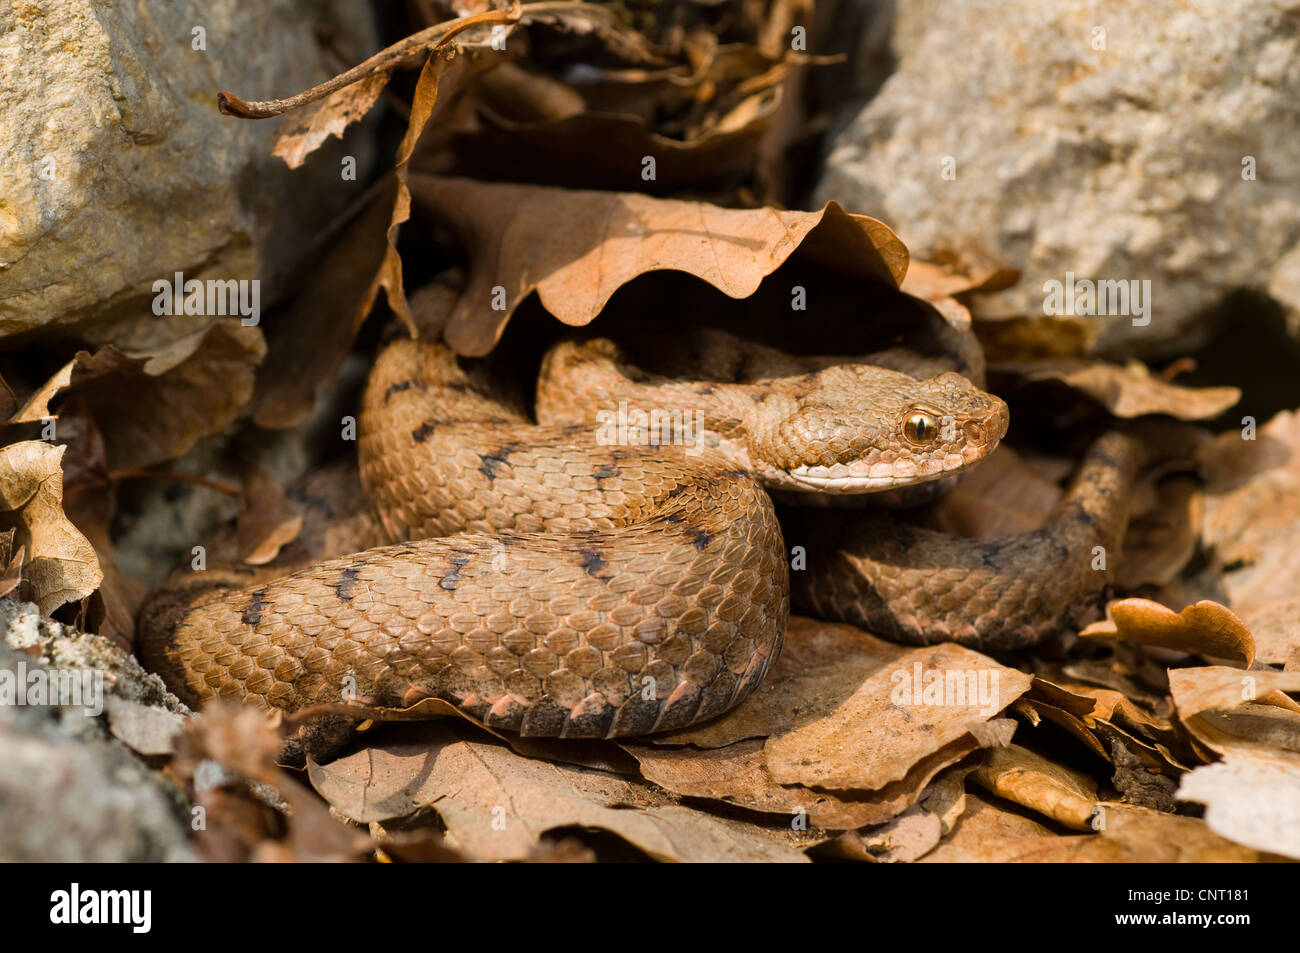 asp viper, aspic viper (Vipera aspis), juvenile in autumn leaves, Switzerland, Jura, Bielersee - Stock Image